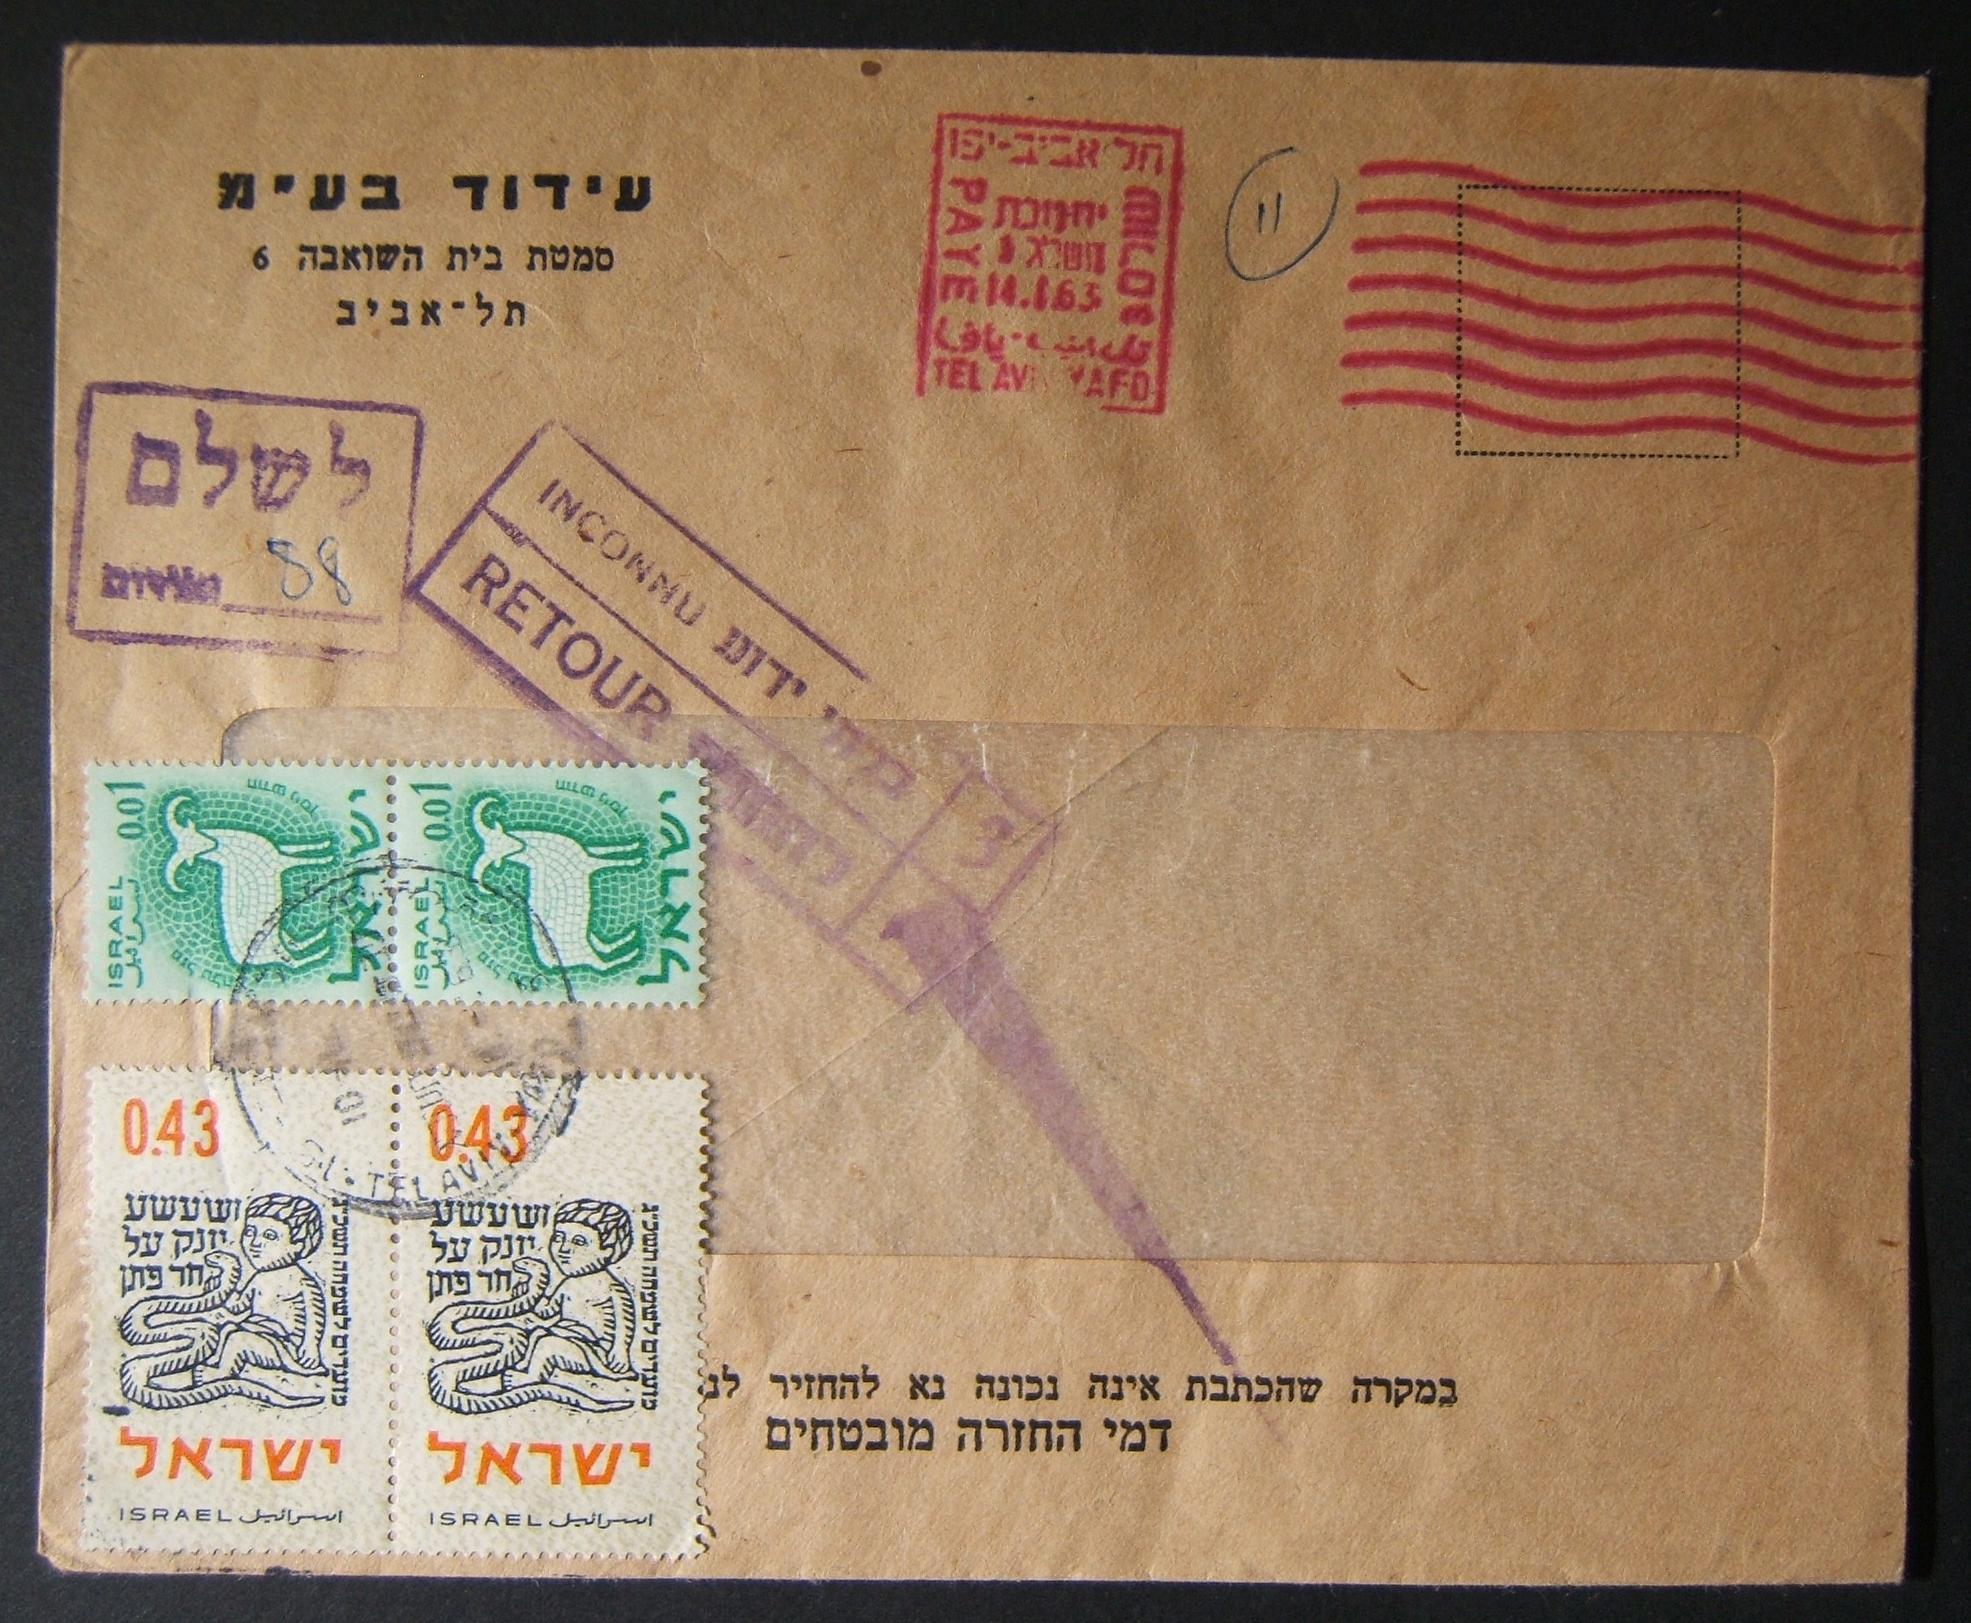 1963 domestic 'top of the pile' taxed franking: 14-1-63 printed matter commercial cover ex TLV branch of Idud Ltd. franked by machine prepayment at the DO-11 period 8 Ag PM rate bu